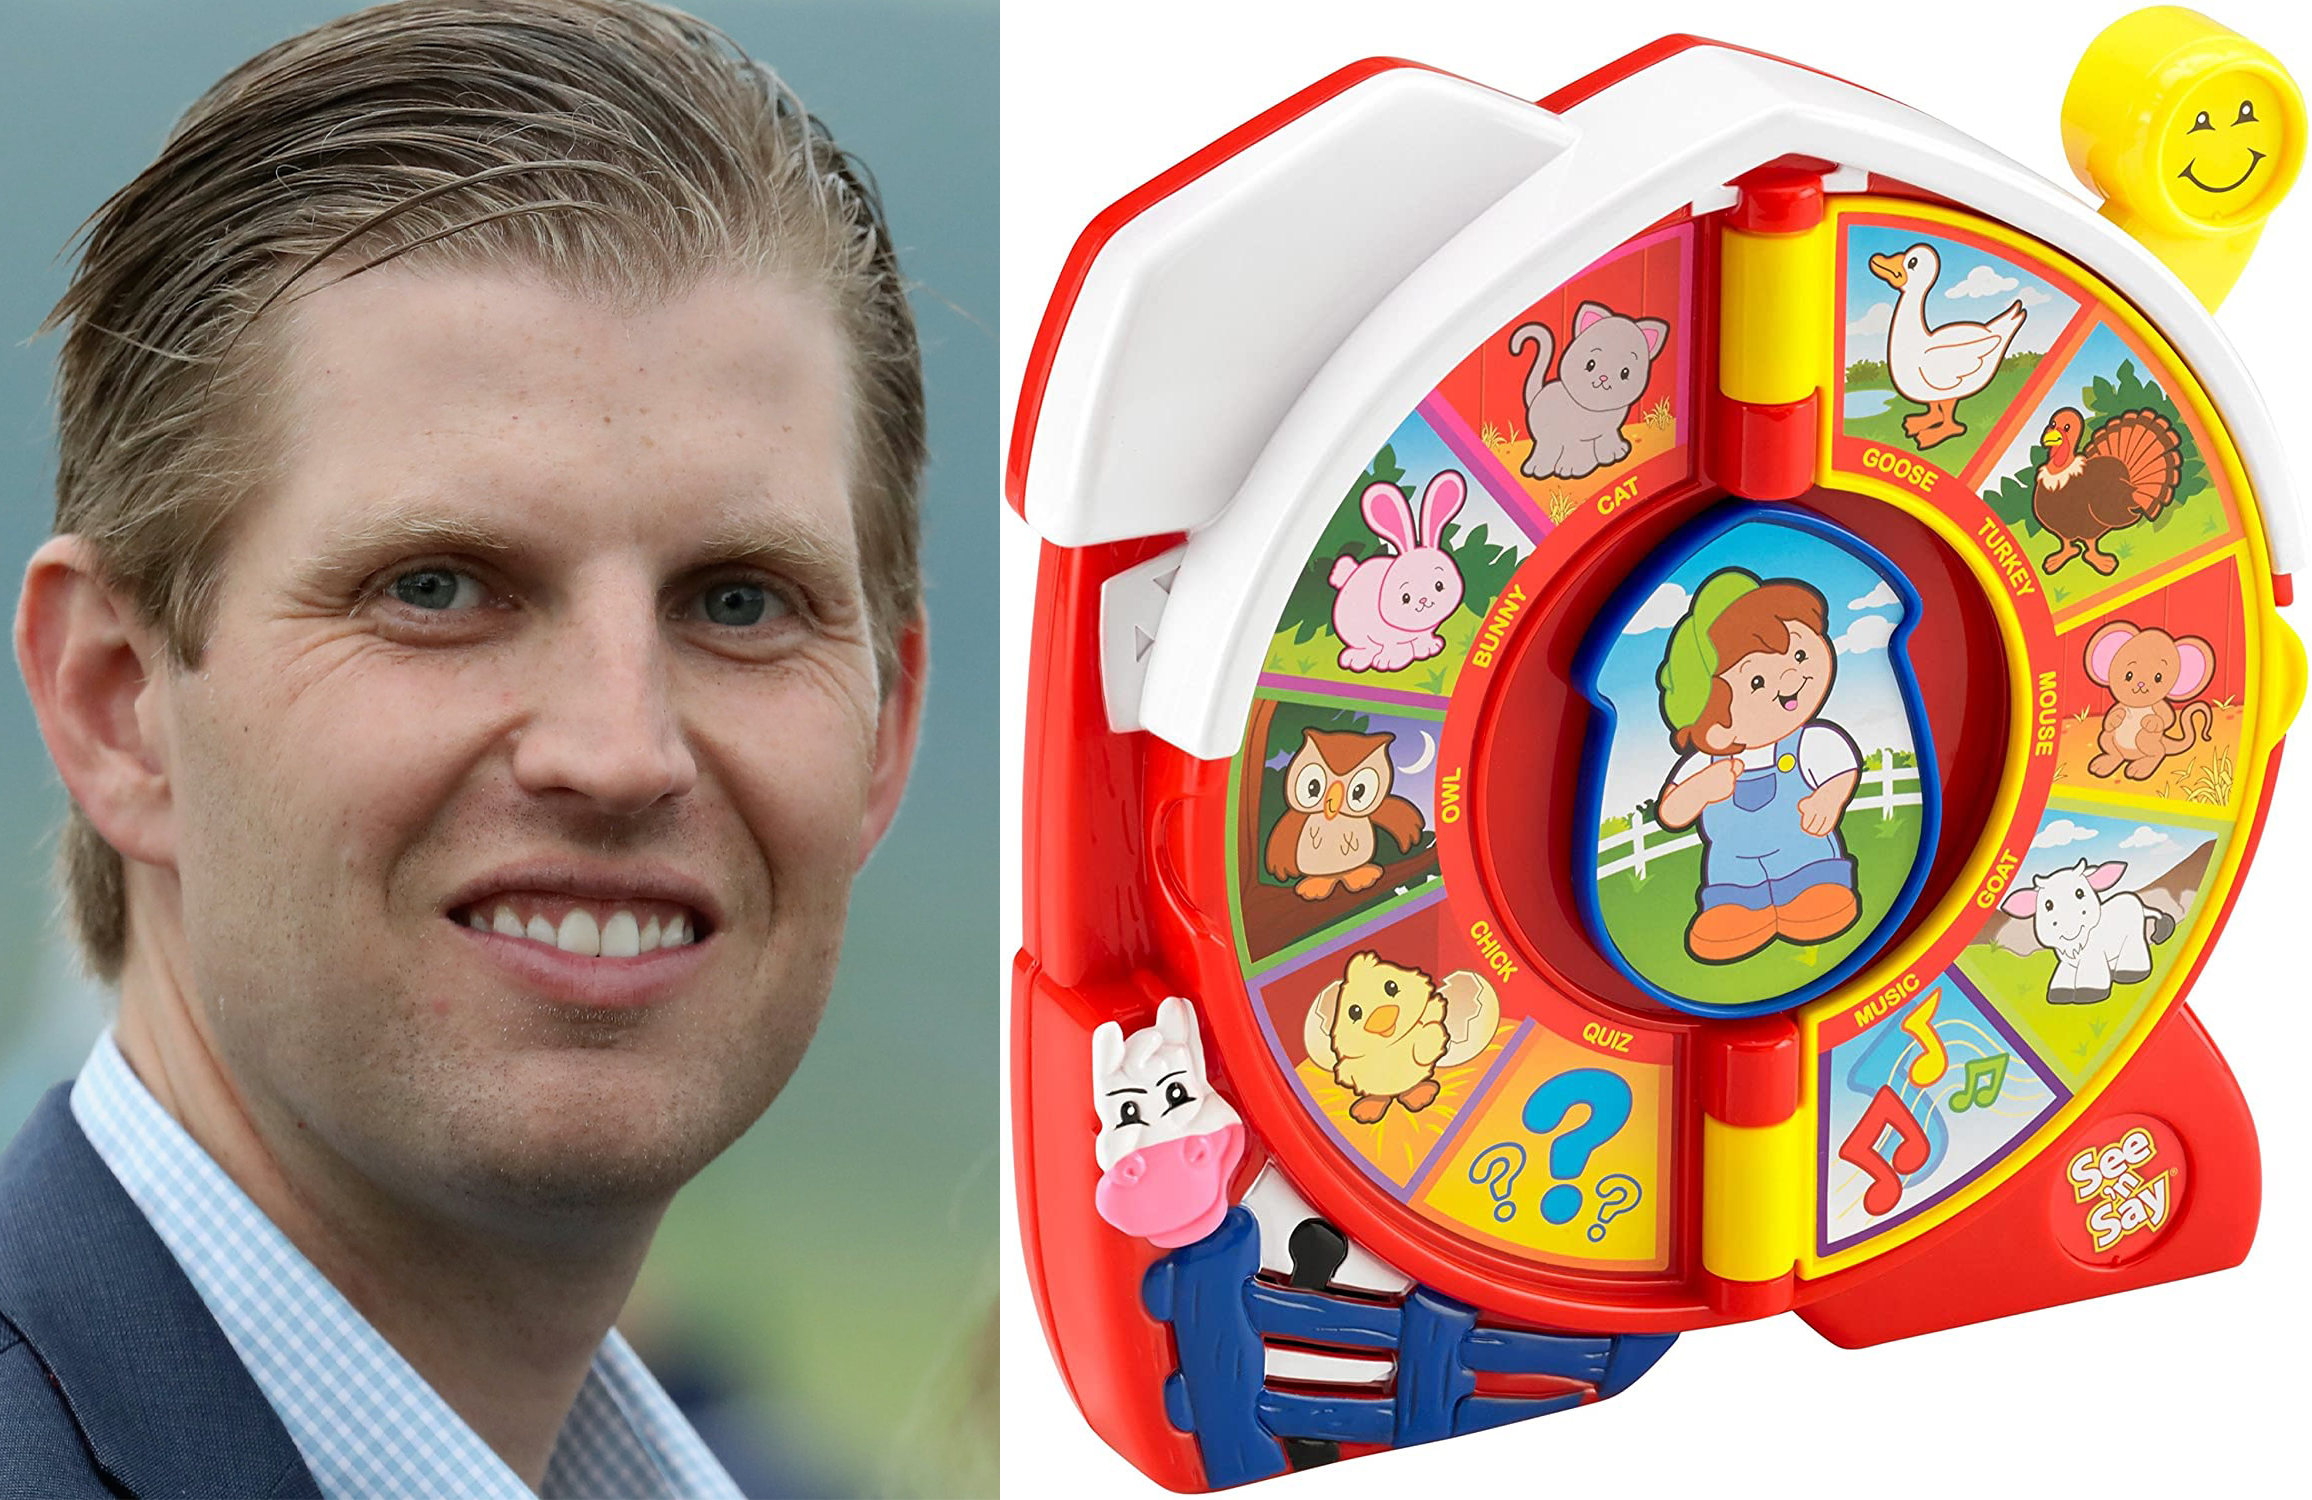 FBI Investigating Contents of Eric Trump's See 'n Say